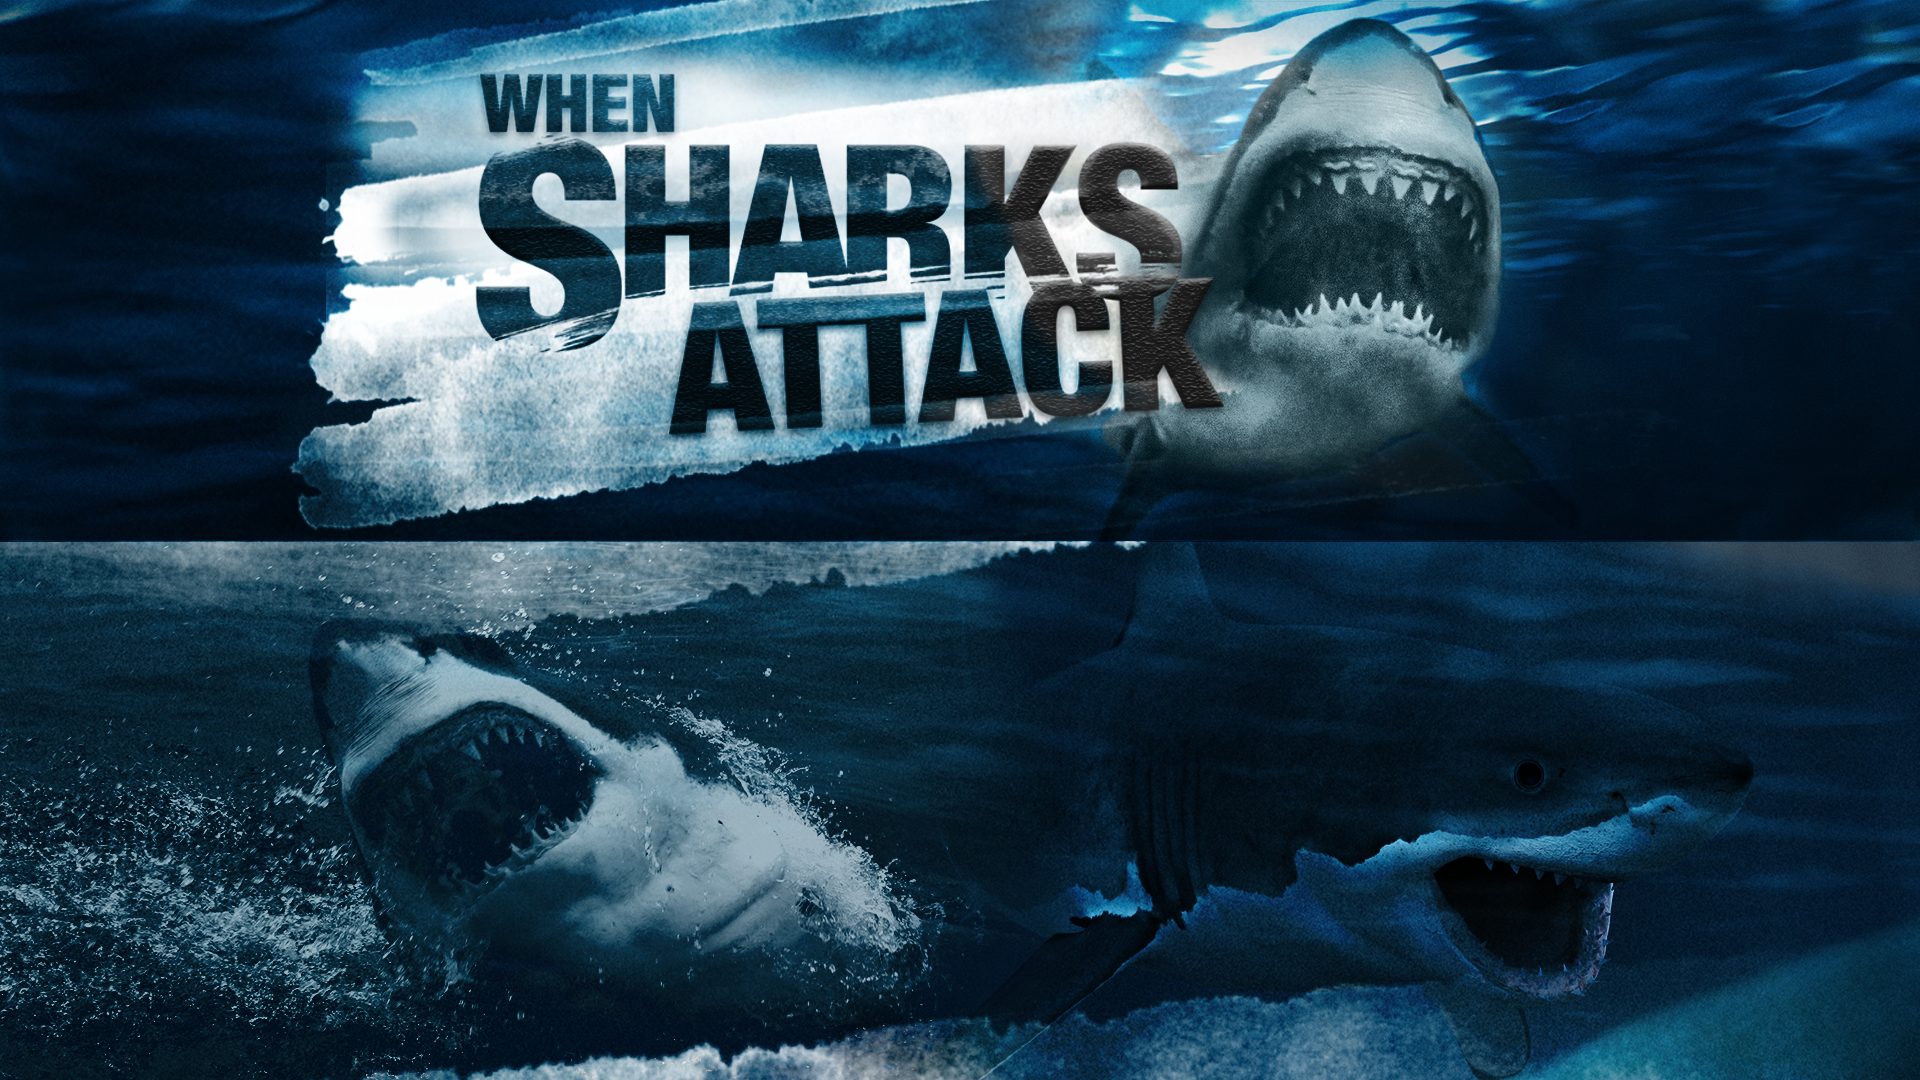 When Sharks Attack BWSW.png